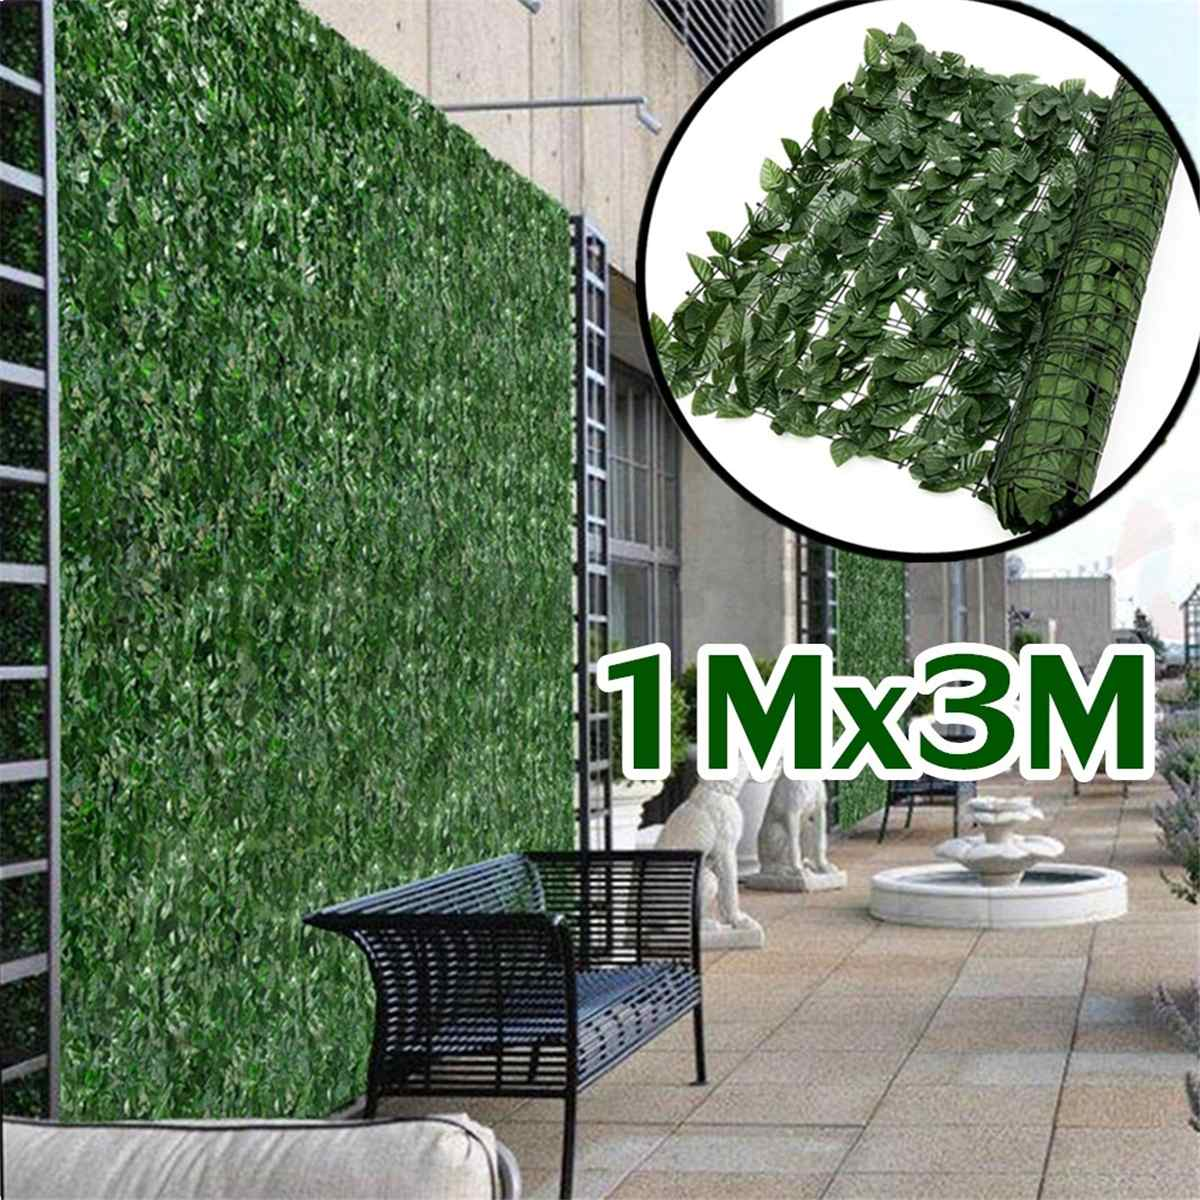 Plant Wall Artificial Lawn Boxwood Hedge Garden Backyard Home Decor Simulation Grass Turf Rug Lawn Outdoor Flower Wall 1x3M